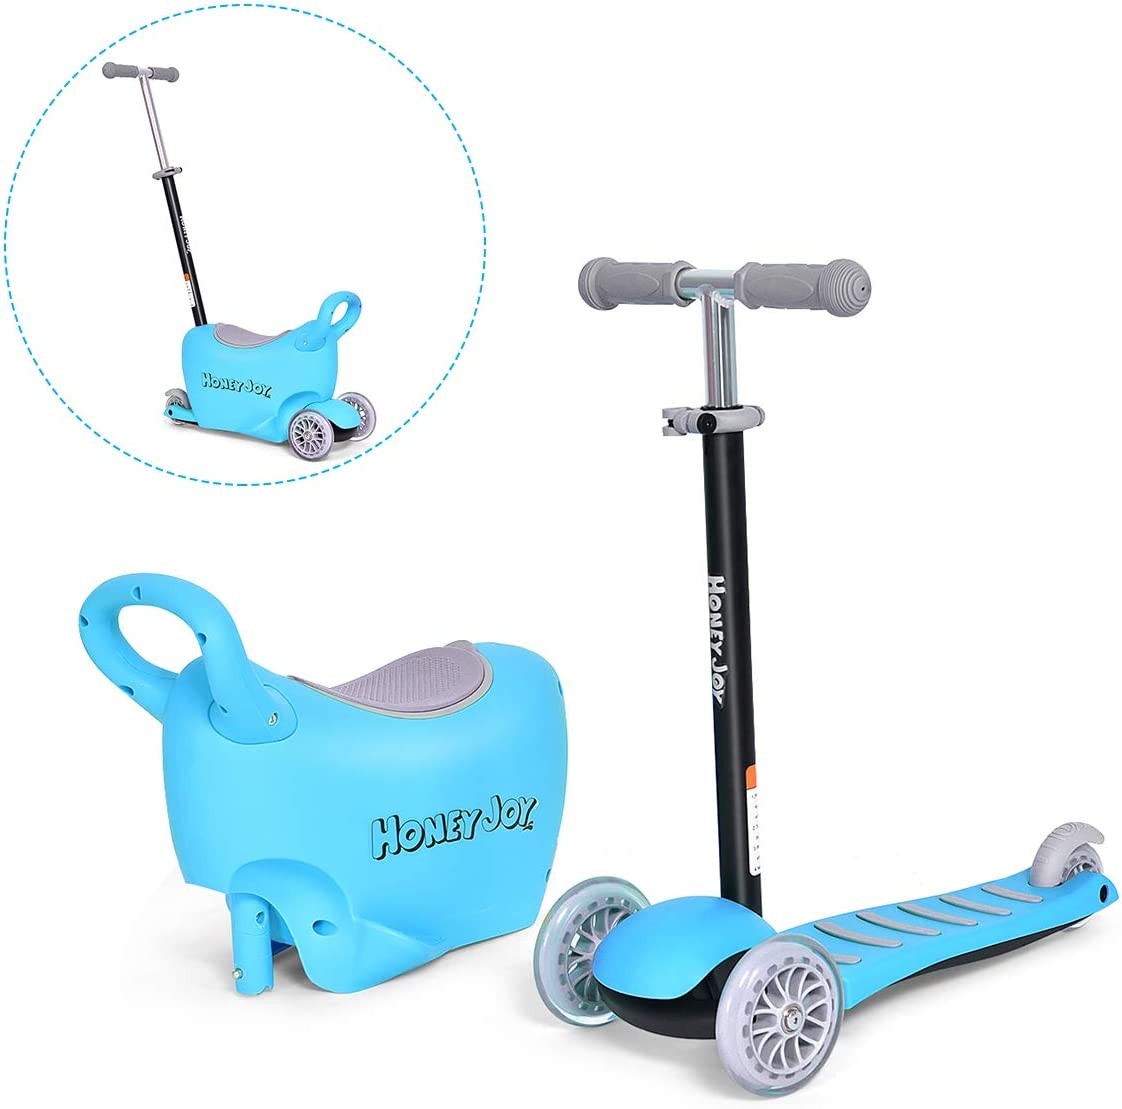 Costzon 3-in-1 Kick Scooter with Removable Seat Handle, Ride On Tricycle, Parental Push Tricycle, Great for Kids Toddlers Girls or Boys Adjustable Height w Large Storage Space